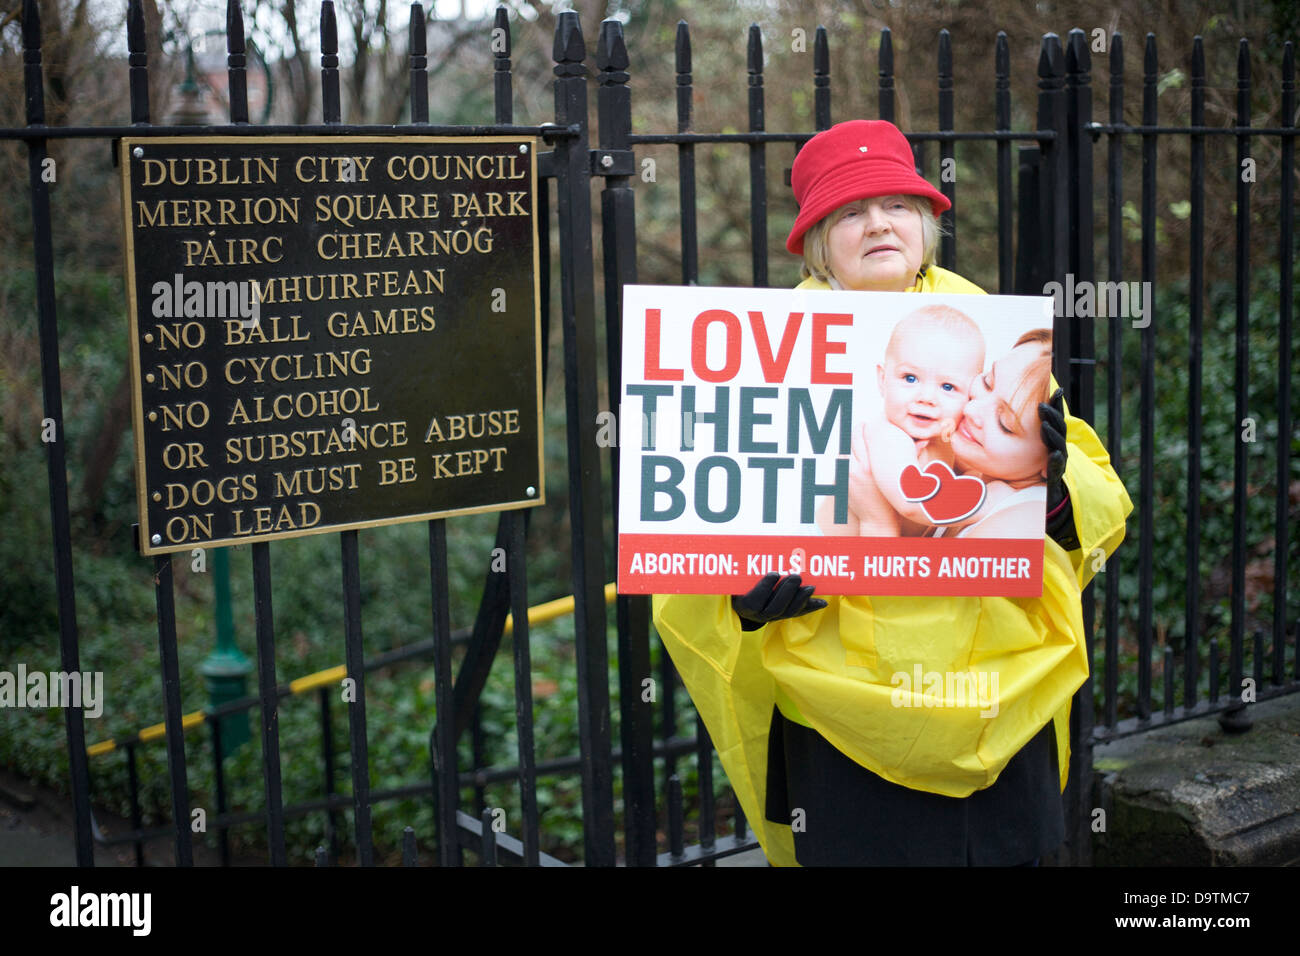 Pro Life protester in Dublin city Ireland - Stock Image